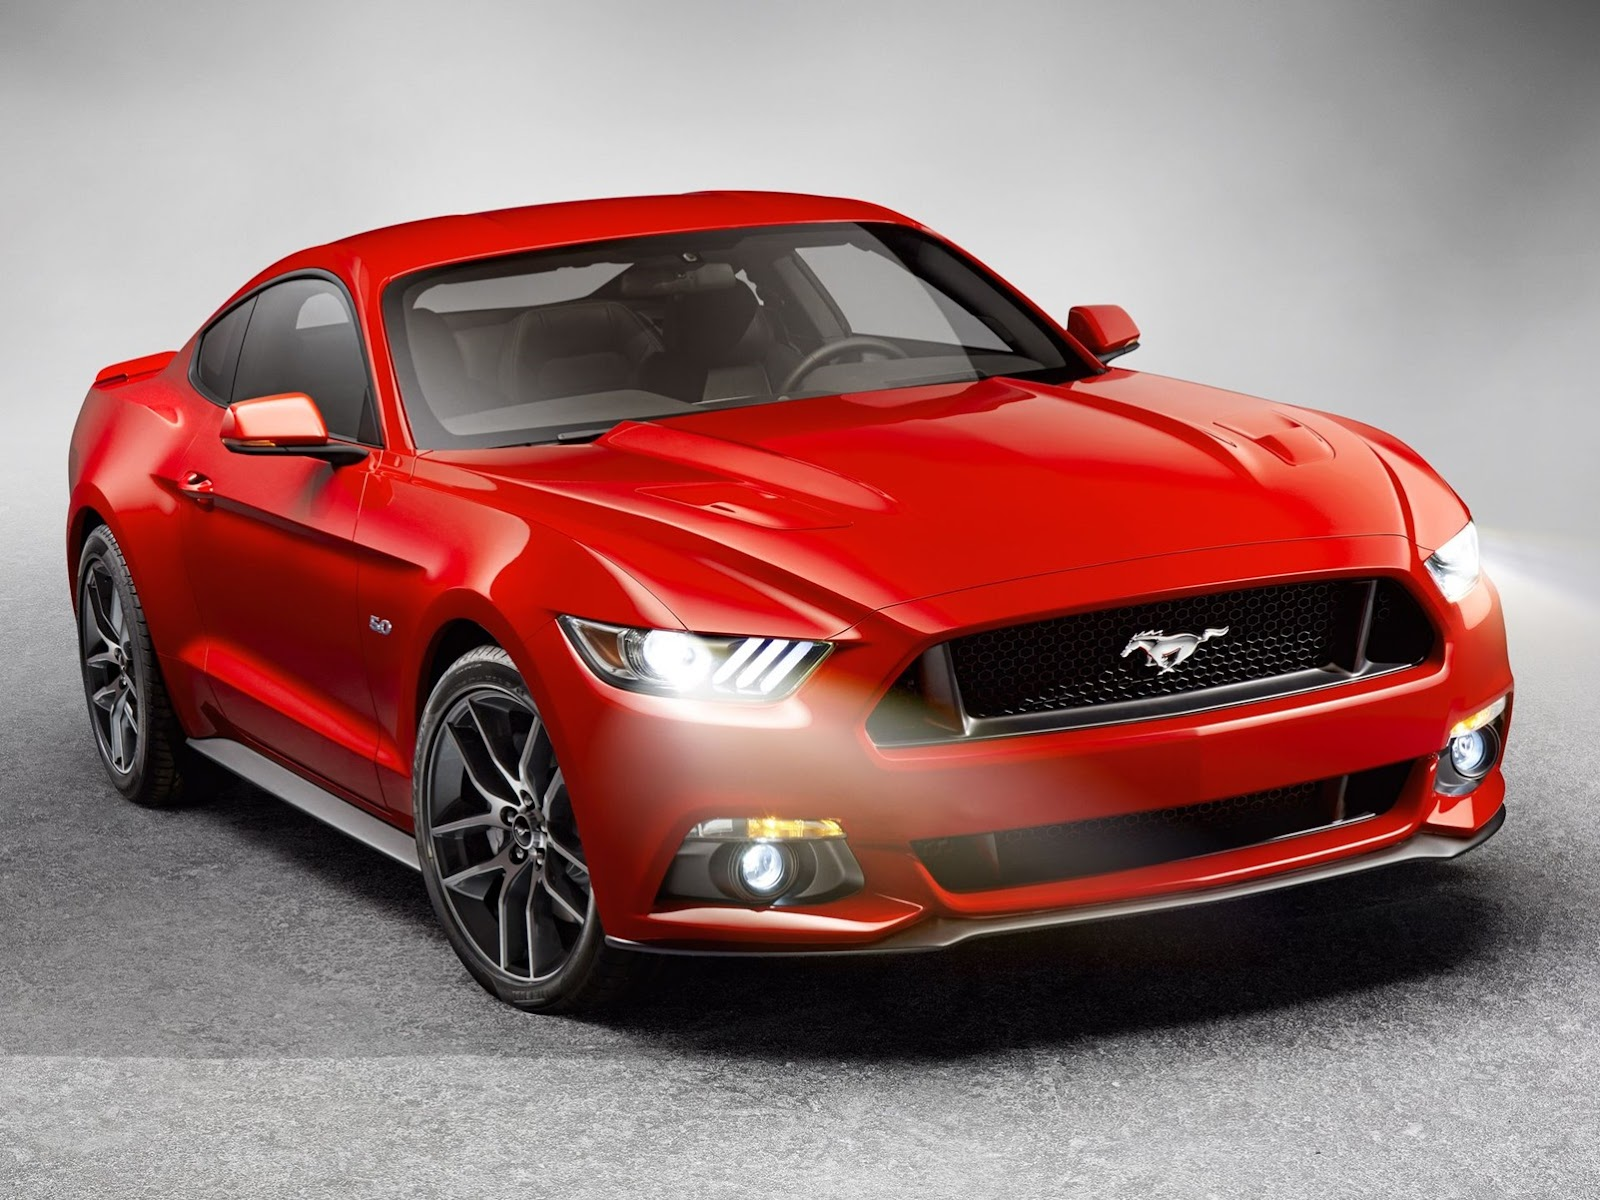 2015-Ford-Mustang-Photos-49%25255B2%25255D.jpg